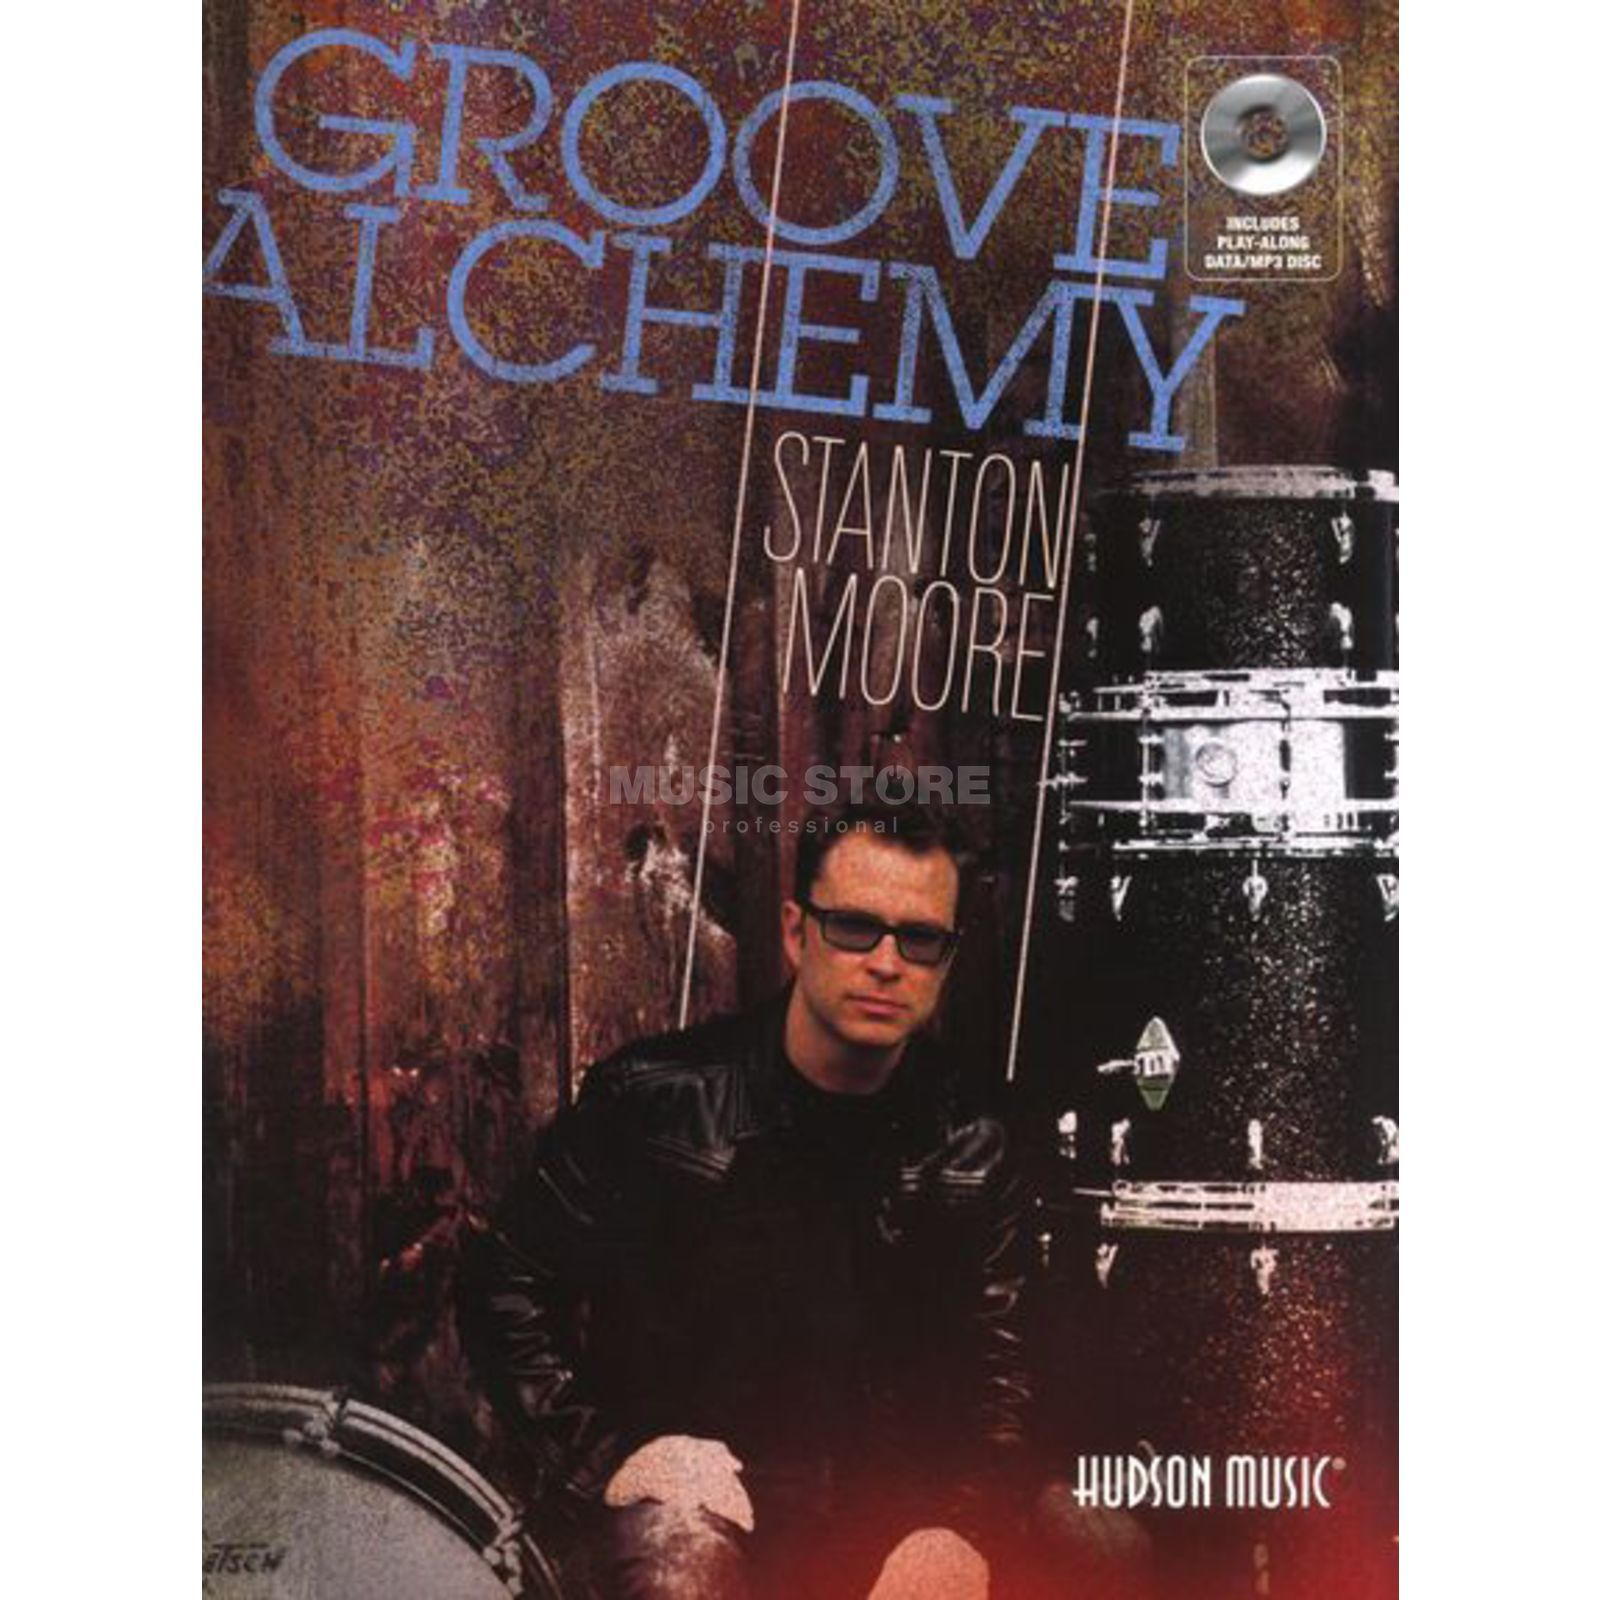 Hal Leonard Stanton Moore - Groove Alchemy Book and CD Produktbillede